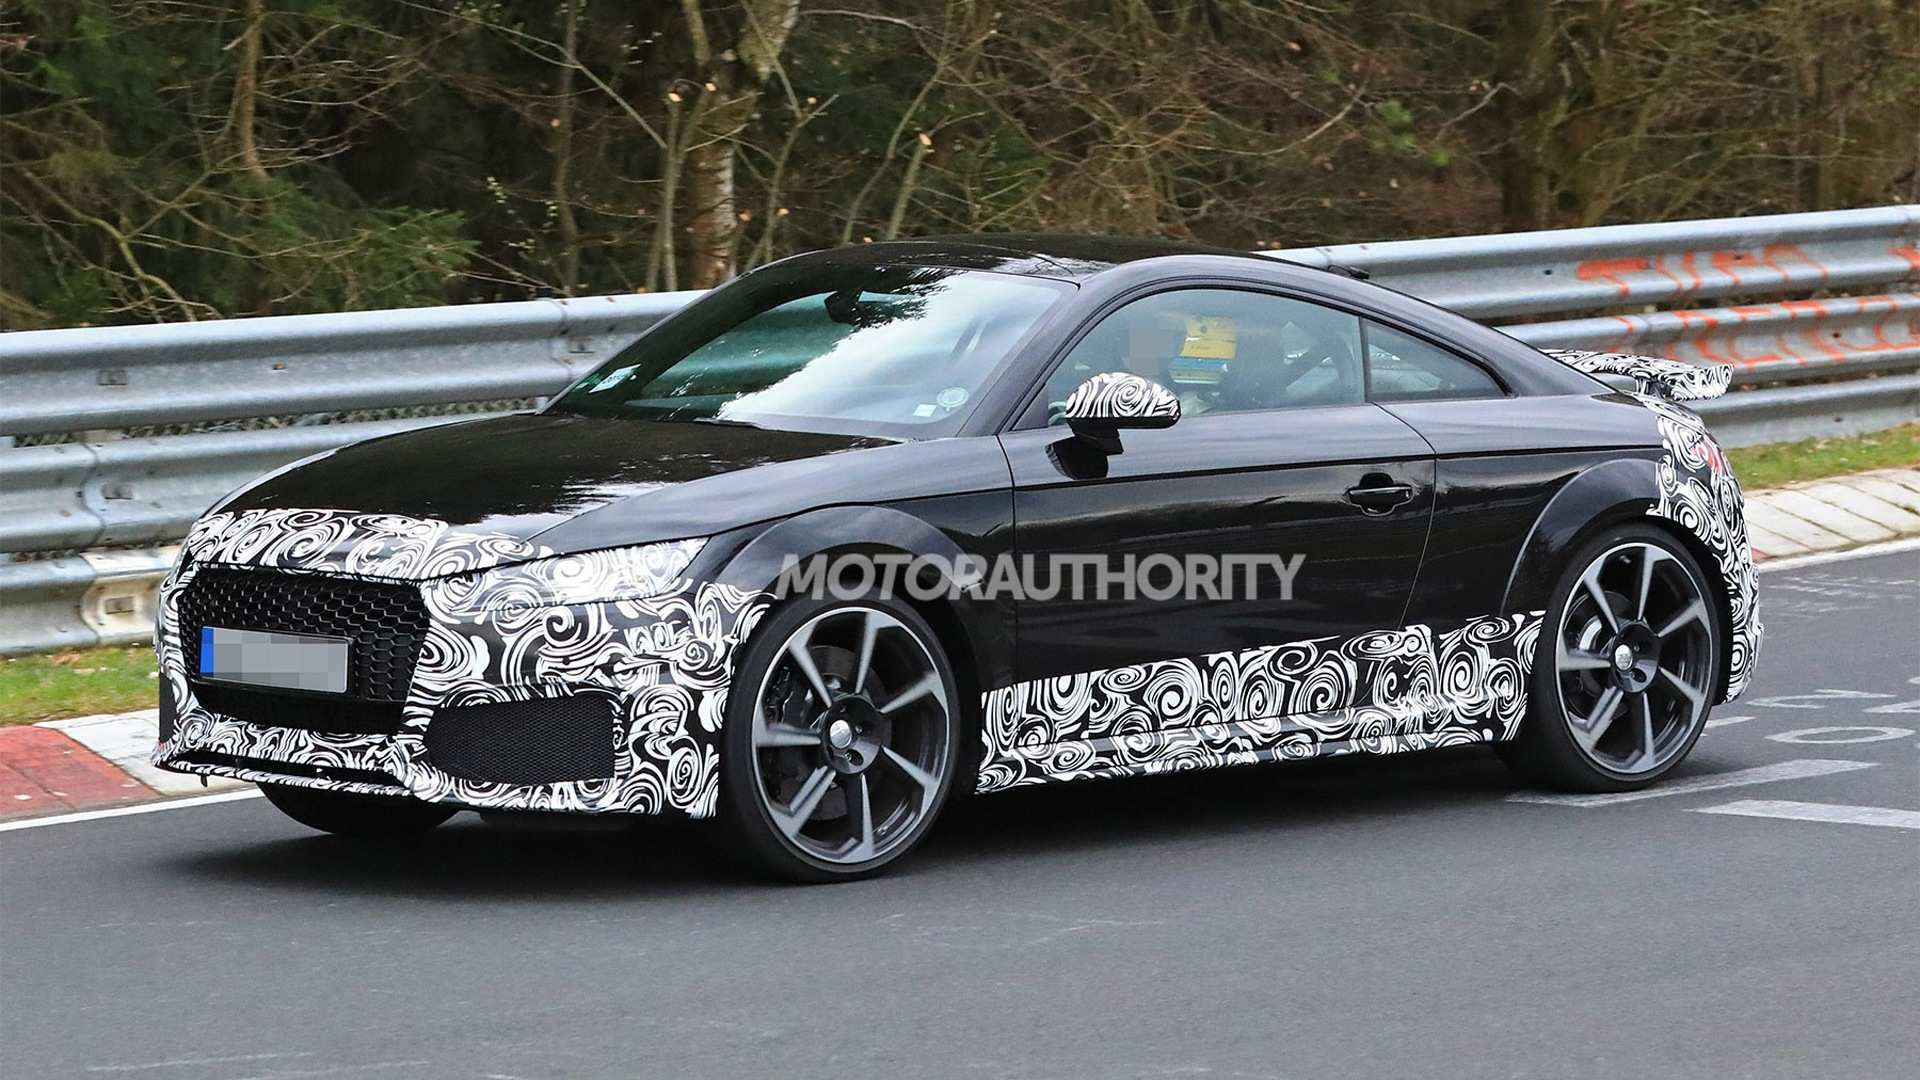 57 The 2020 Audi Tt Rs Model for 2020 Audi Tt Rs